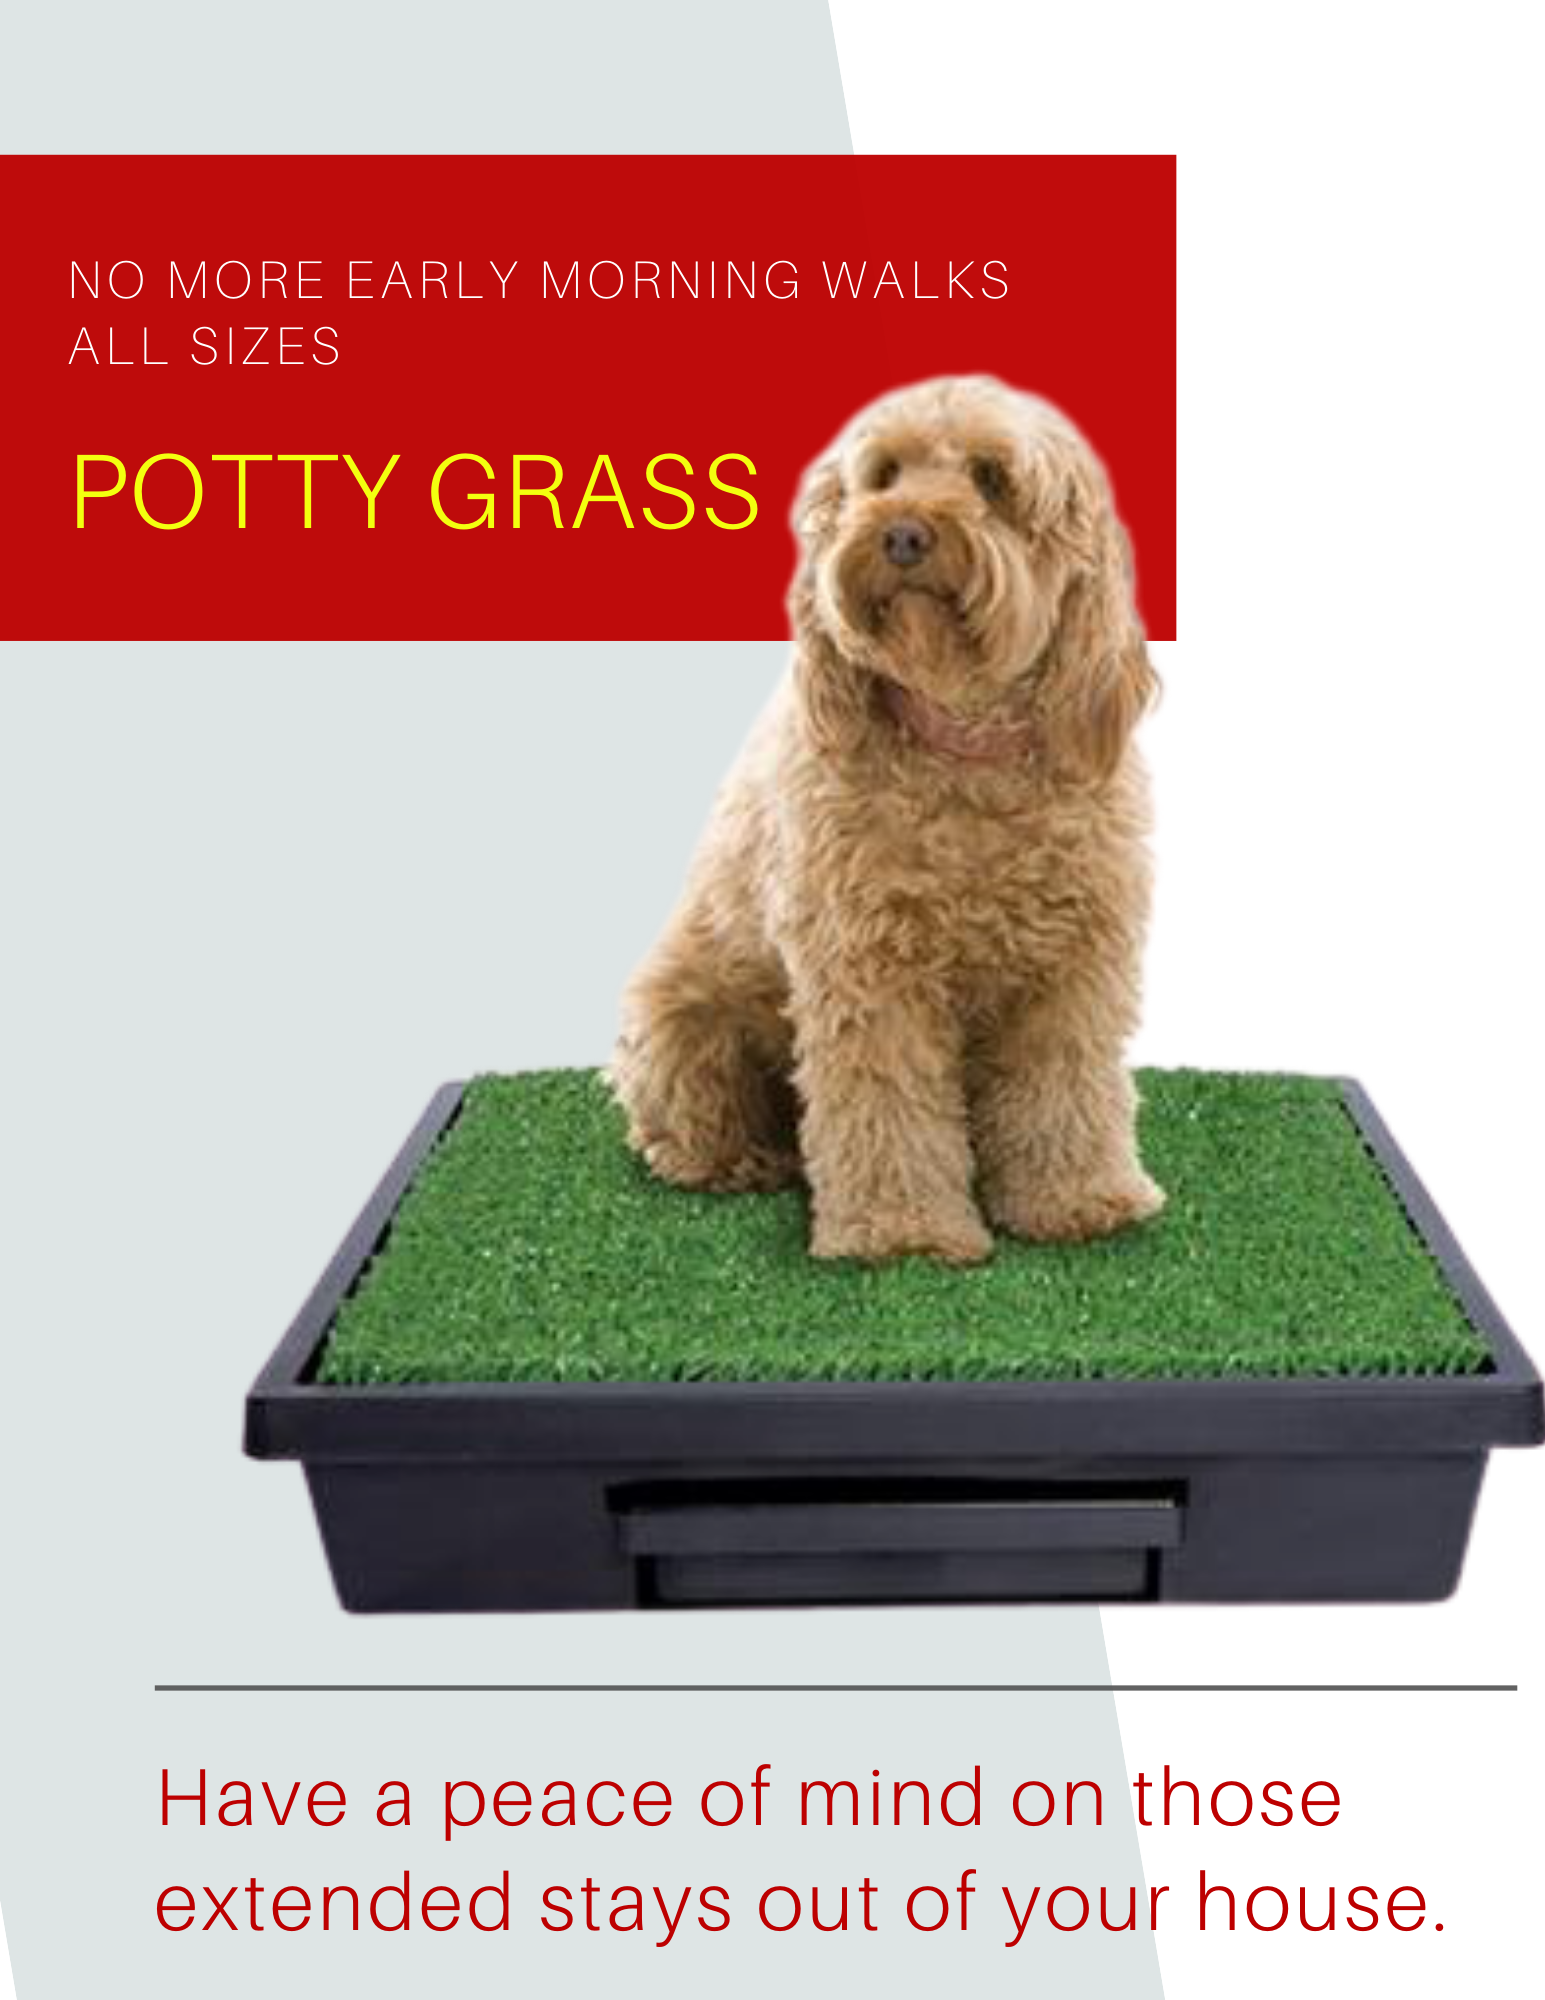 Potty Grass for Dogs